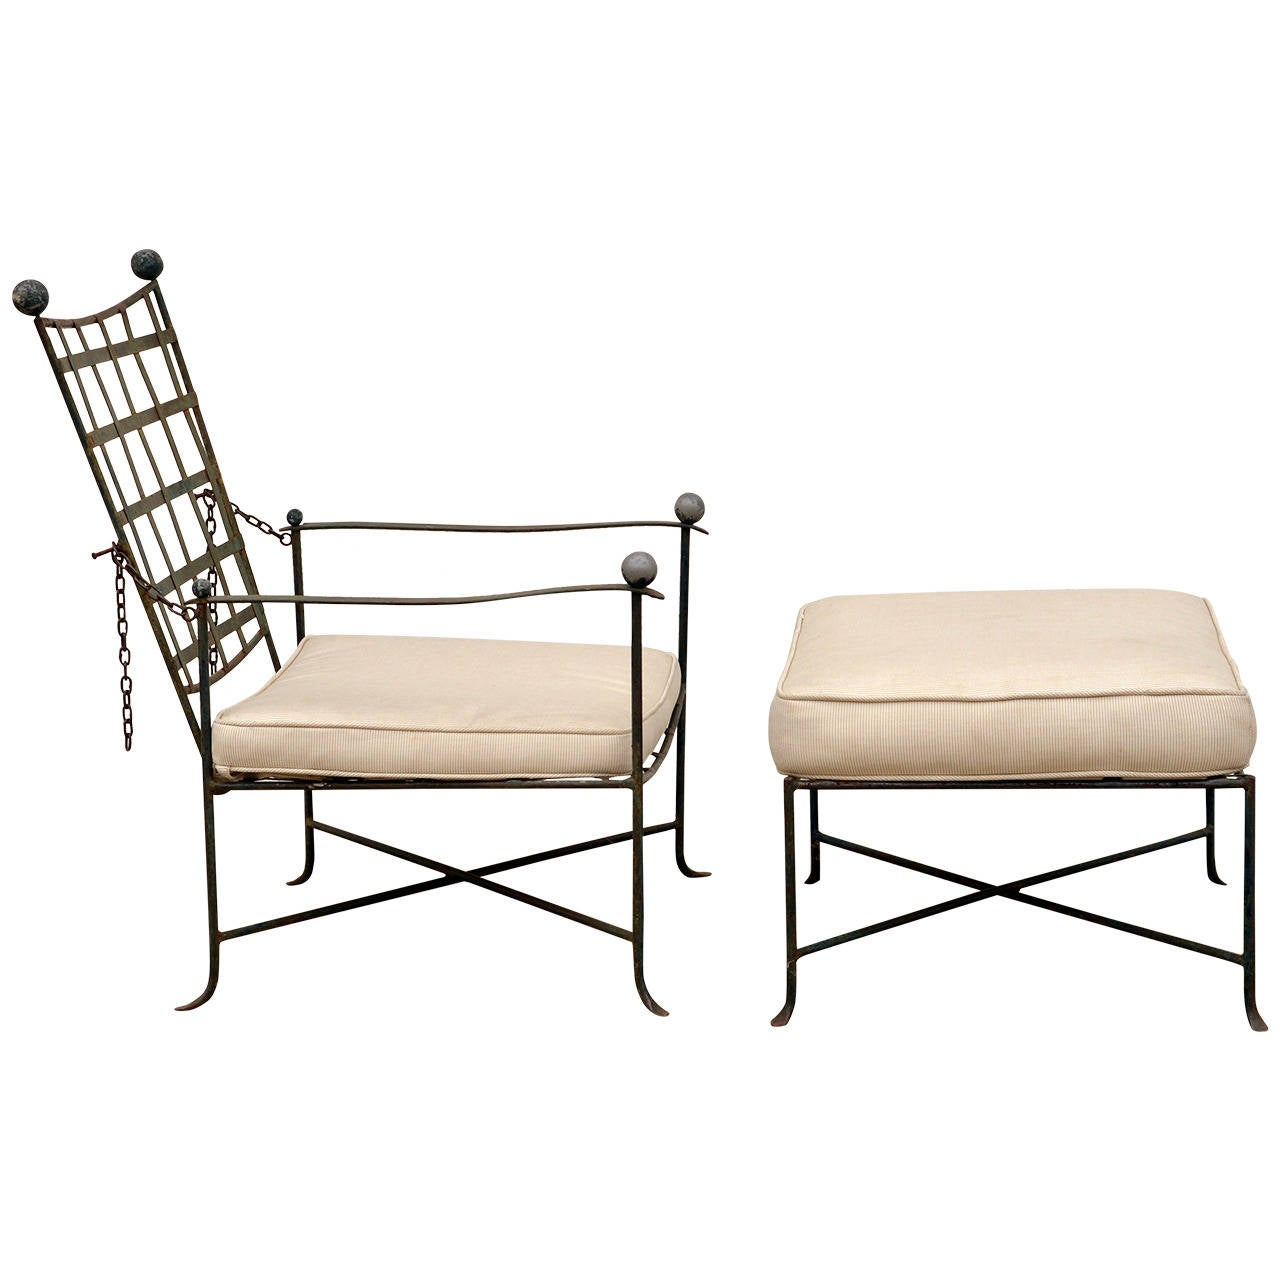 Patio Chairs With Ottoman Patio Chairs With Ottoman Trend Pixelmari